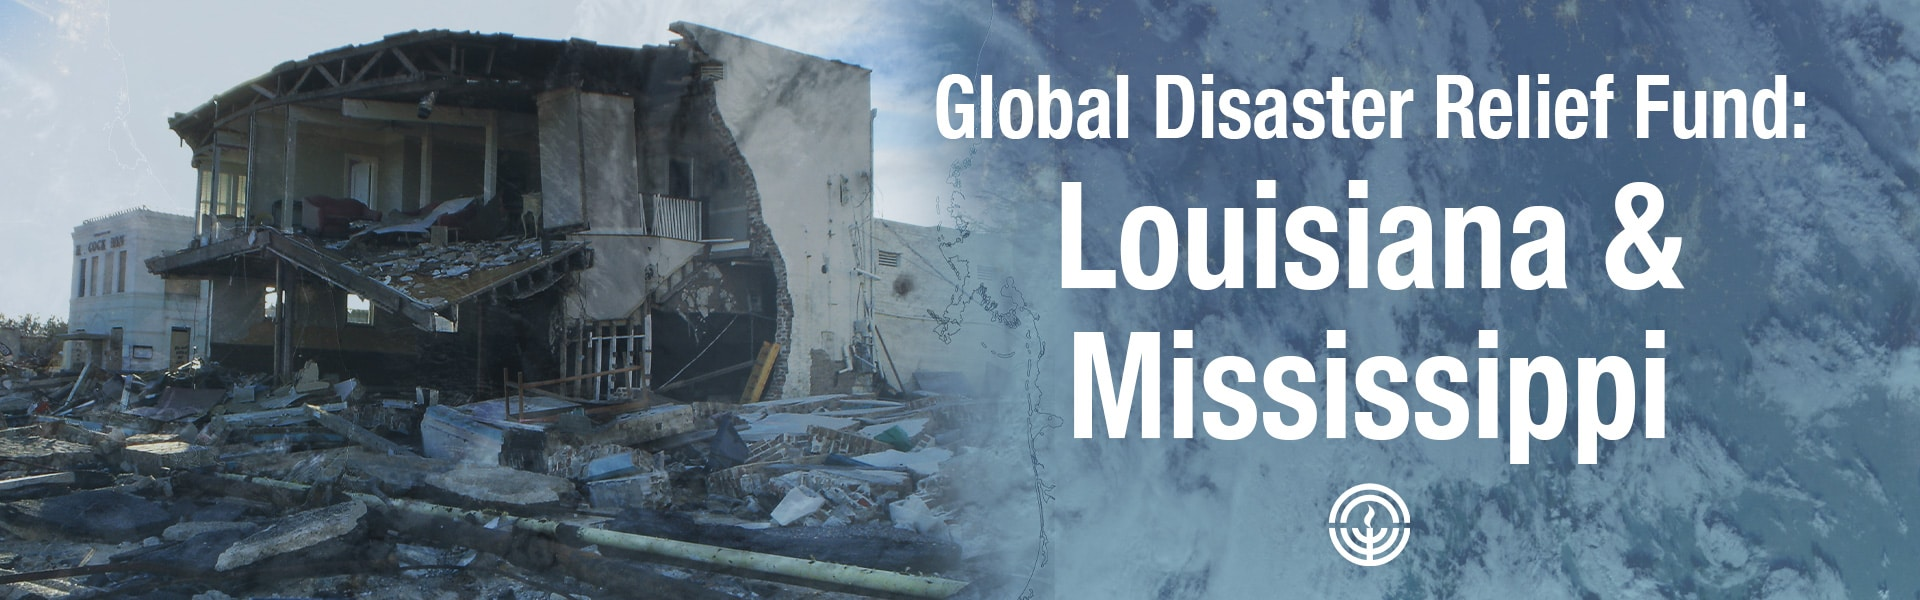 Louisiana & Mississippi Disaster Relief